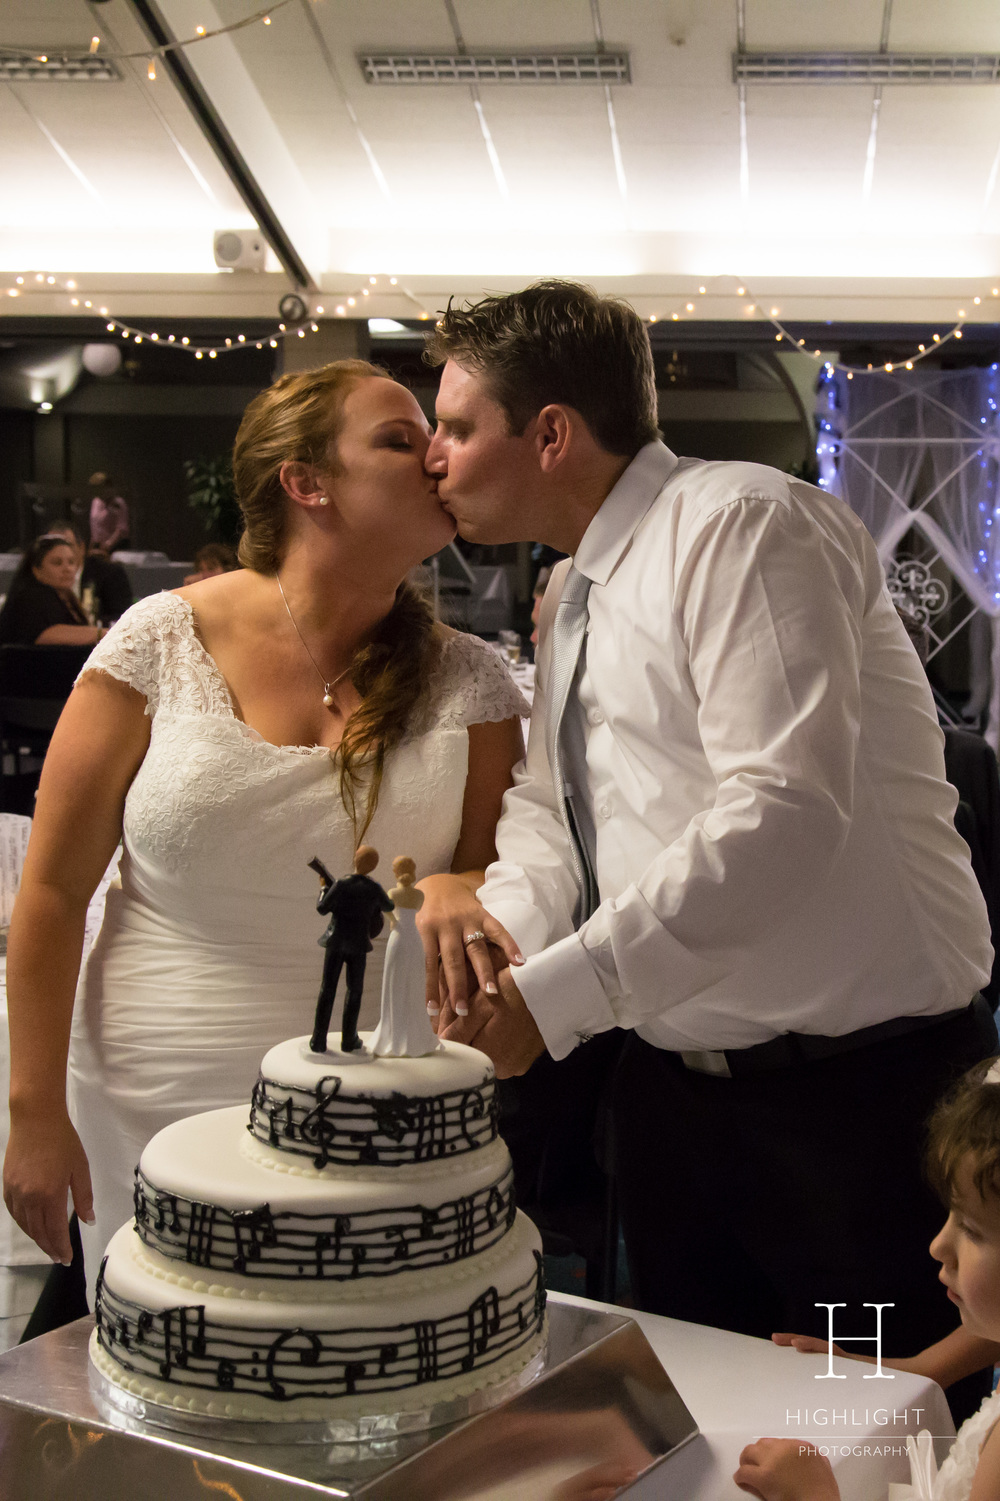 highlight-wedding-photography-palmerston-north-cake-kiss.jpg